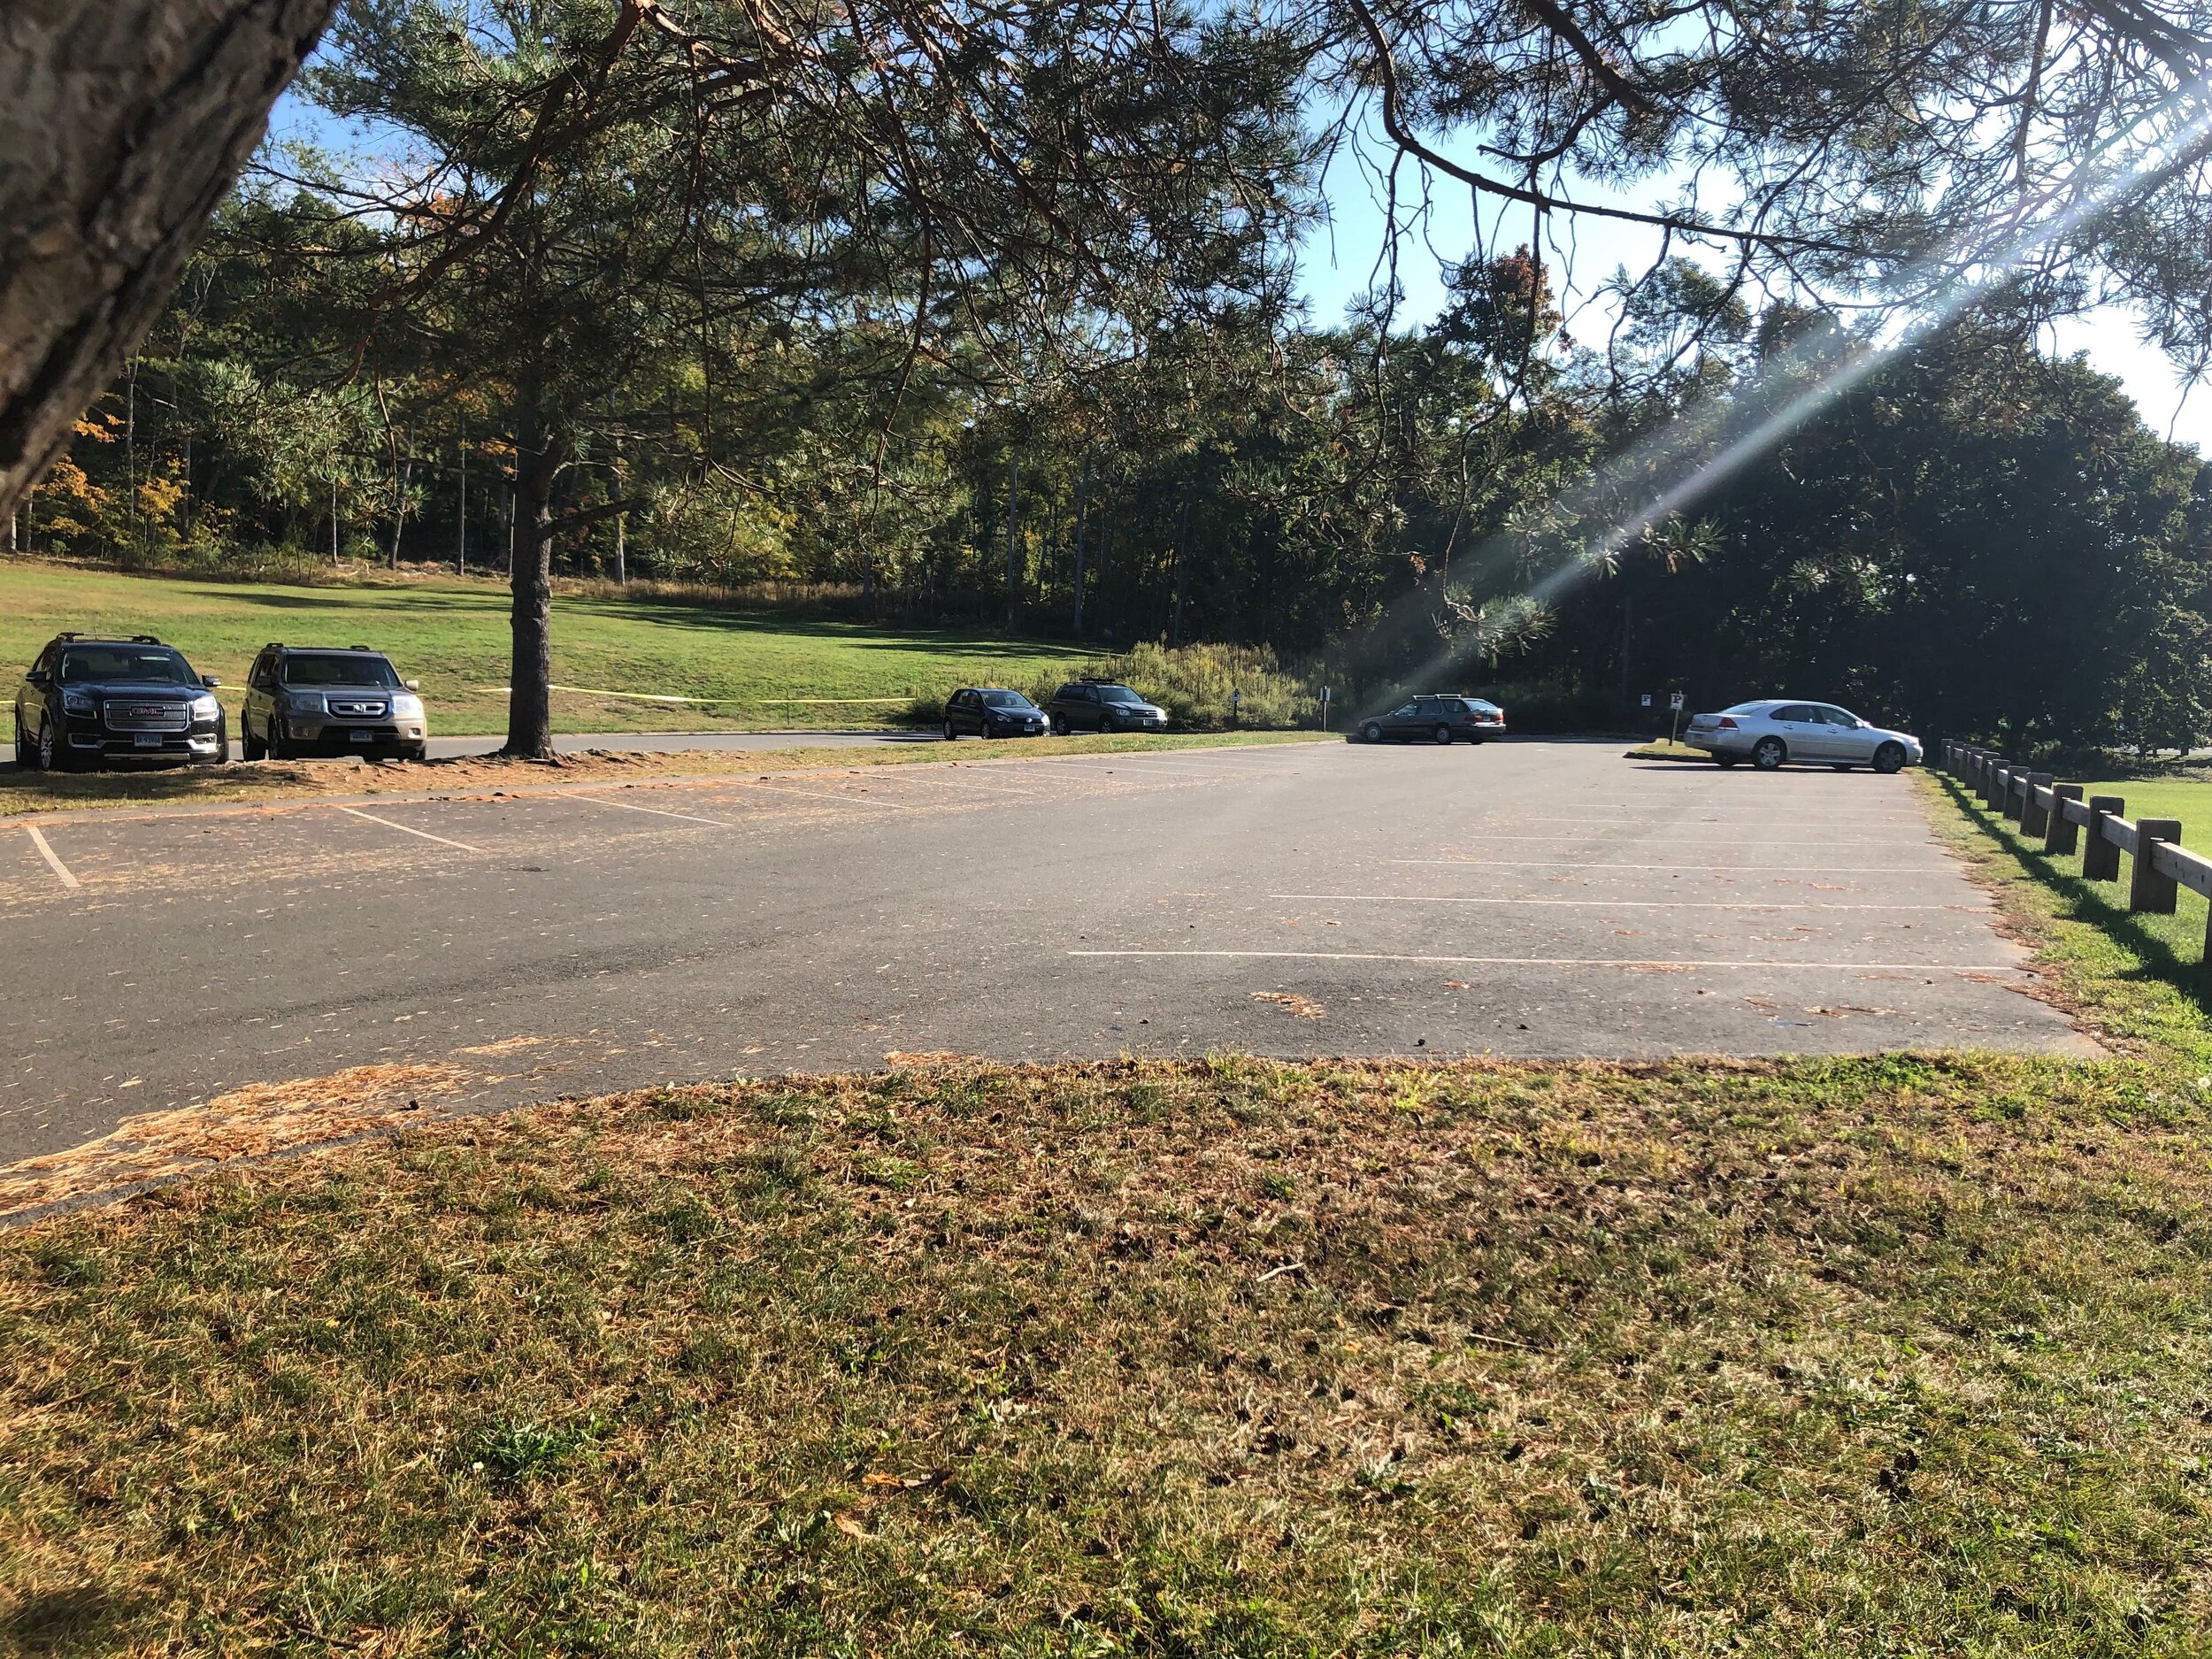 The parking lot of Sleeping Giant State Park was nearly empty on a sunny and warm Wednesday morning.